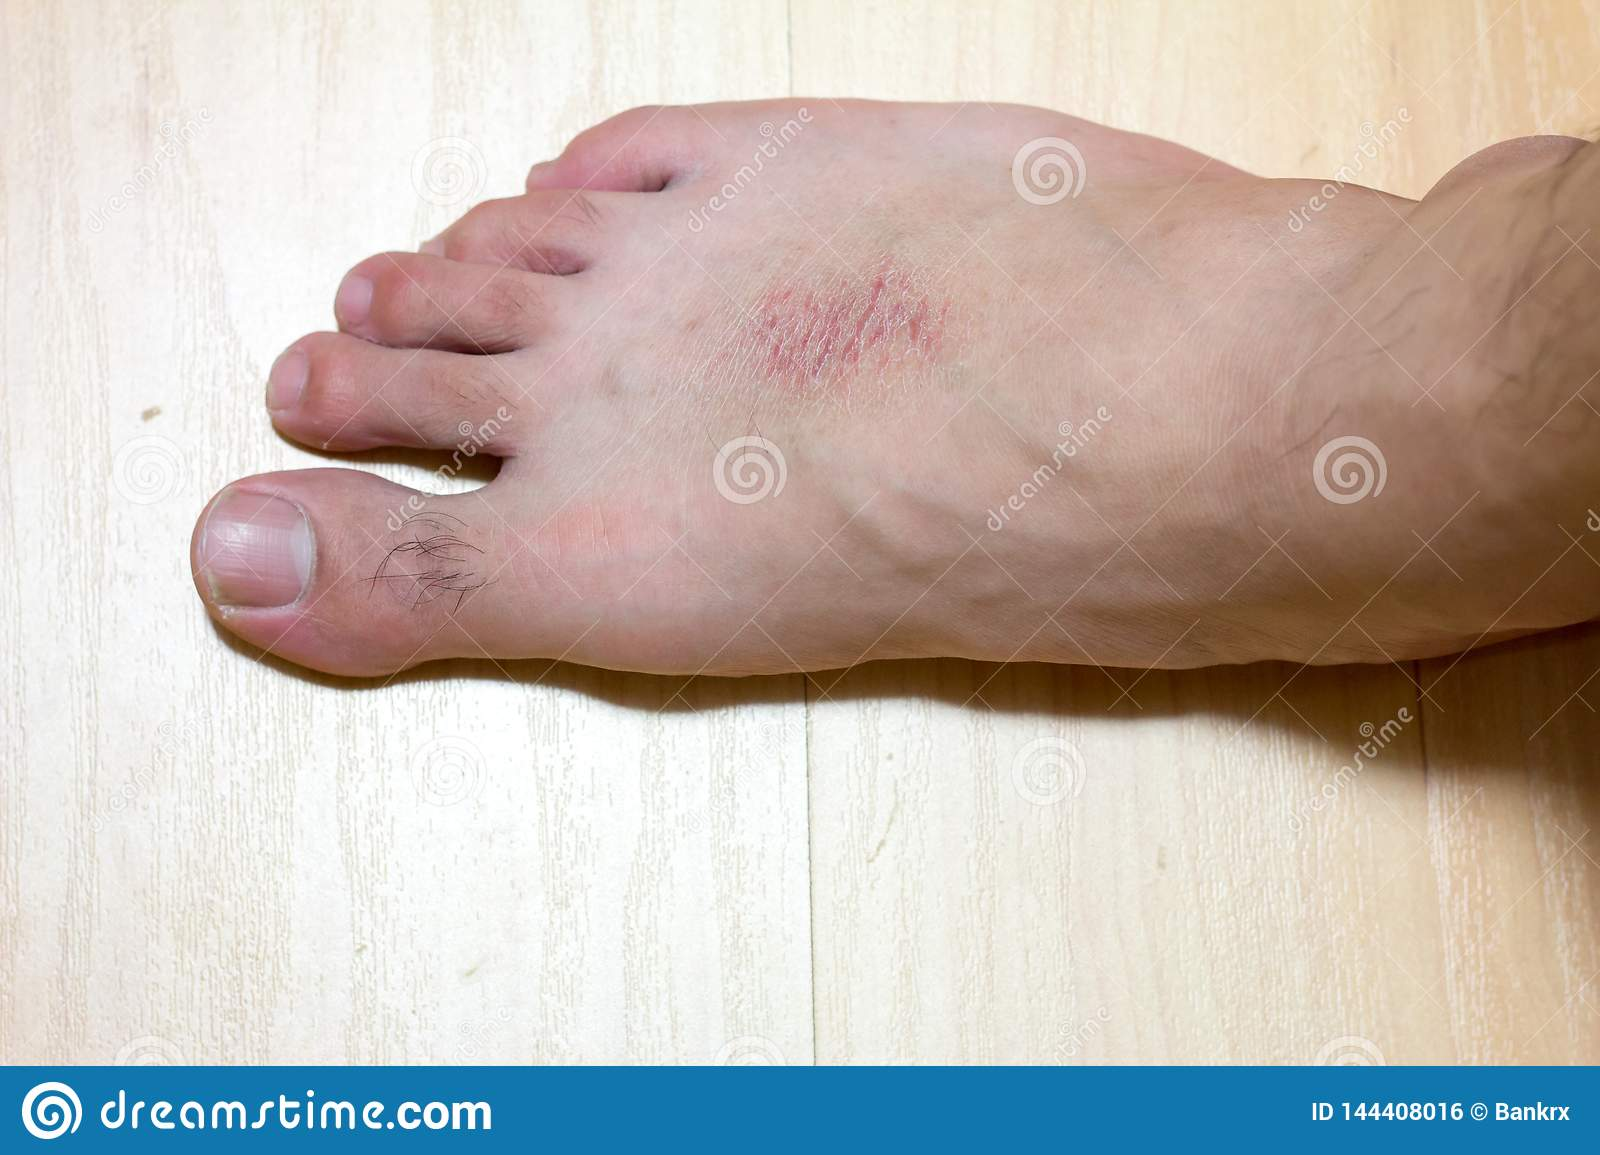 Dry Skin And Rash At Male Foot On Wood Background Stock Photo Image Of Beauty Cream 144408016